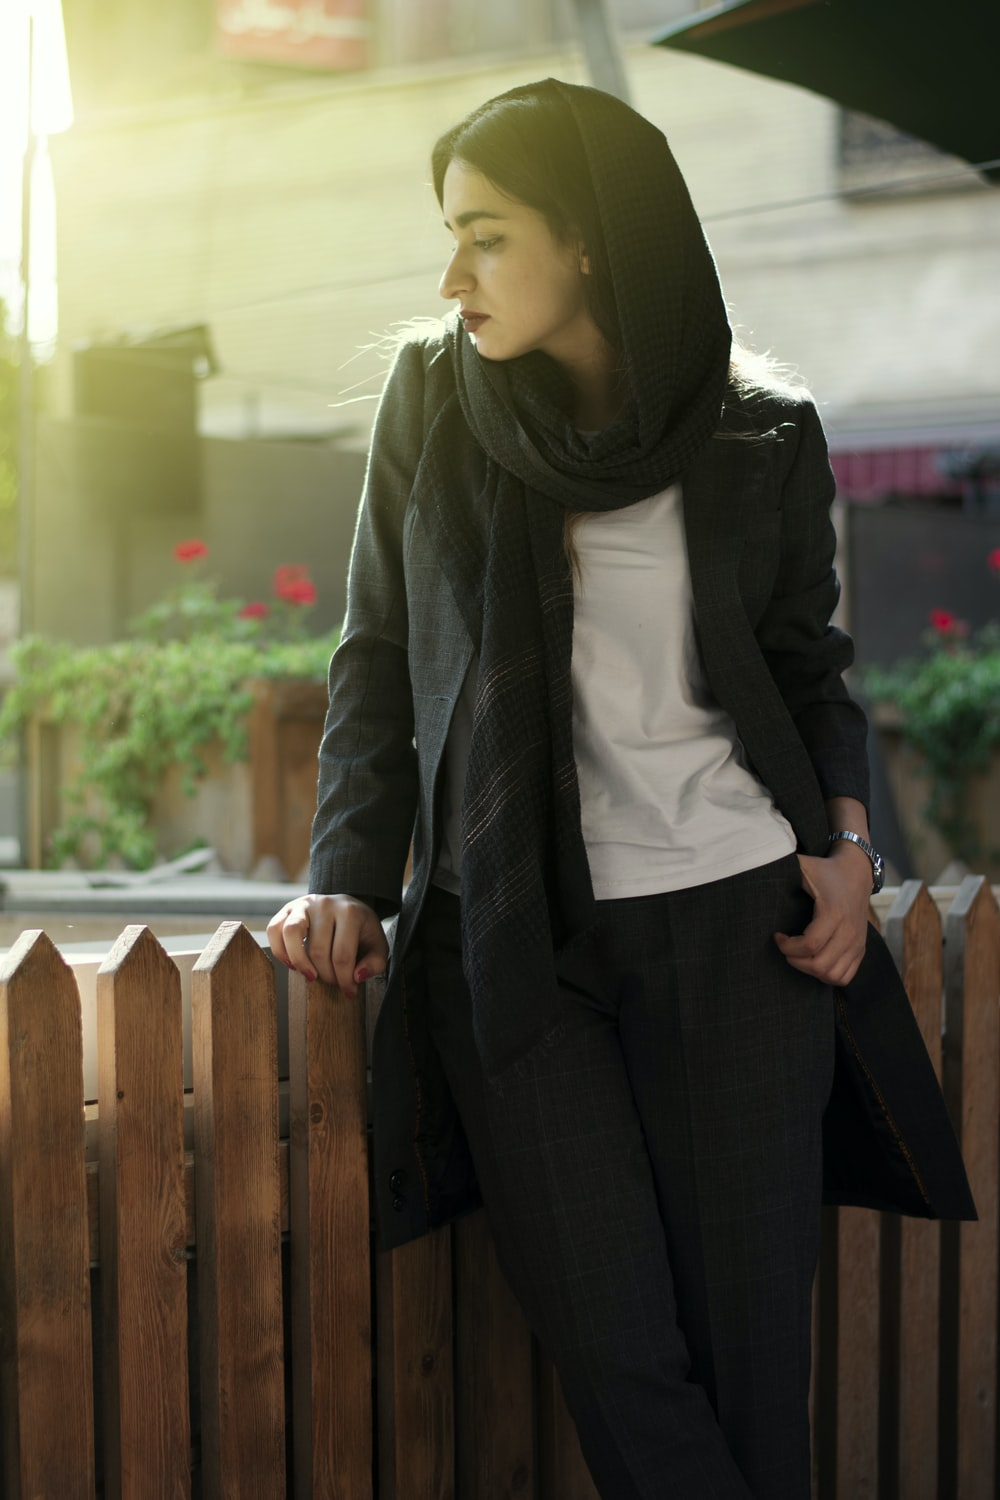 woman in black pants and gray scarf standing beside brown wooden fence